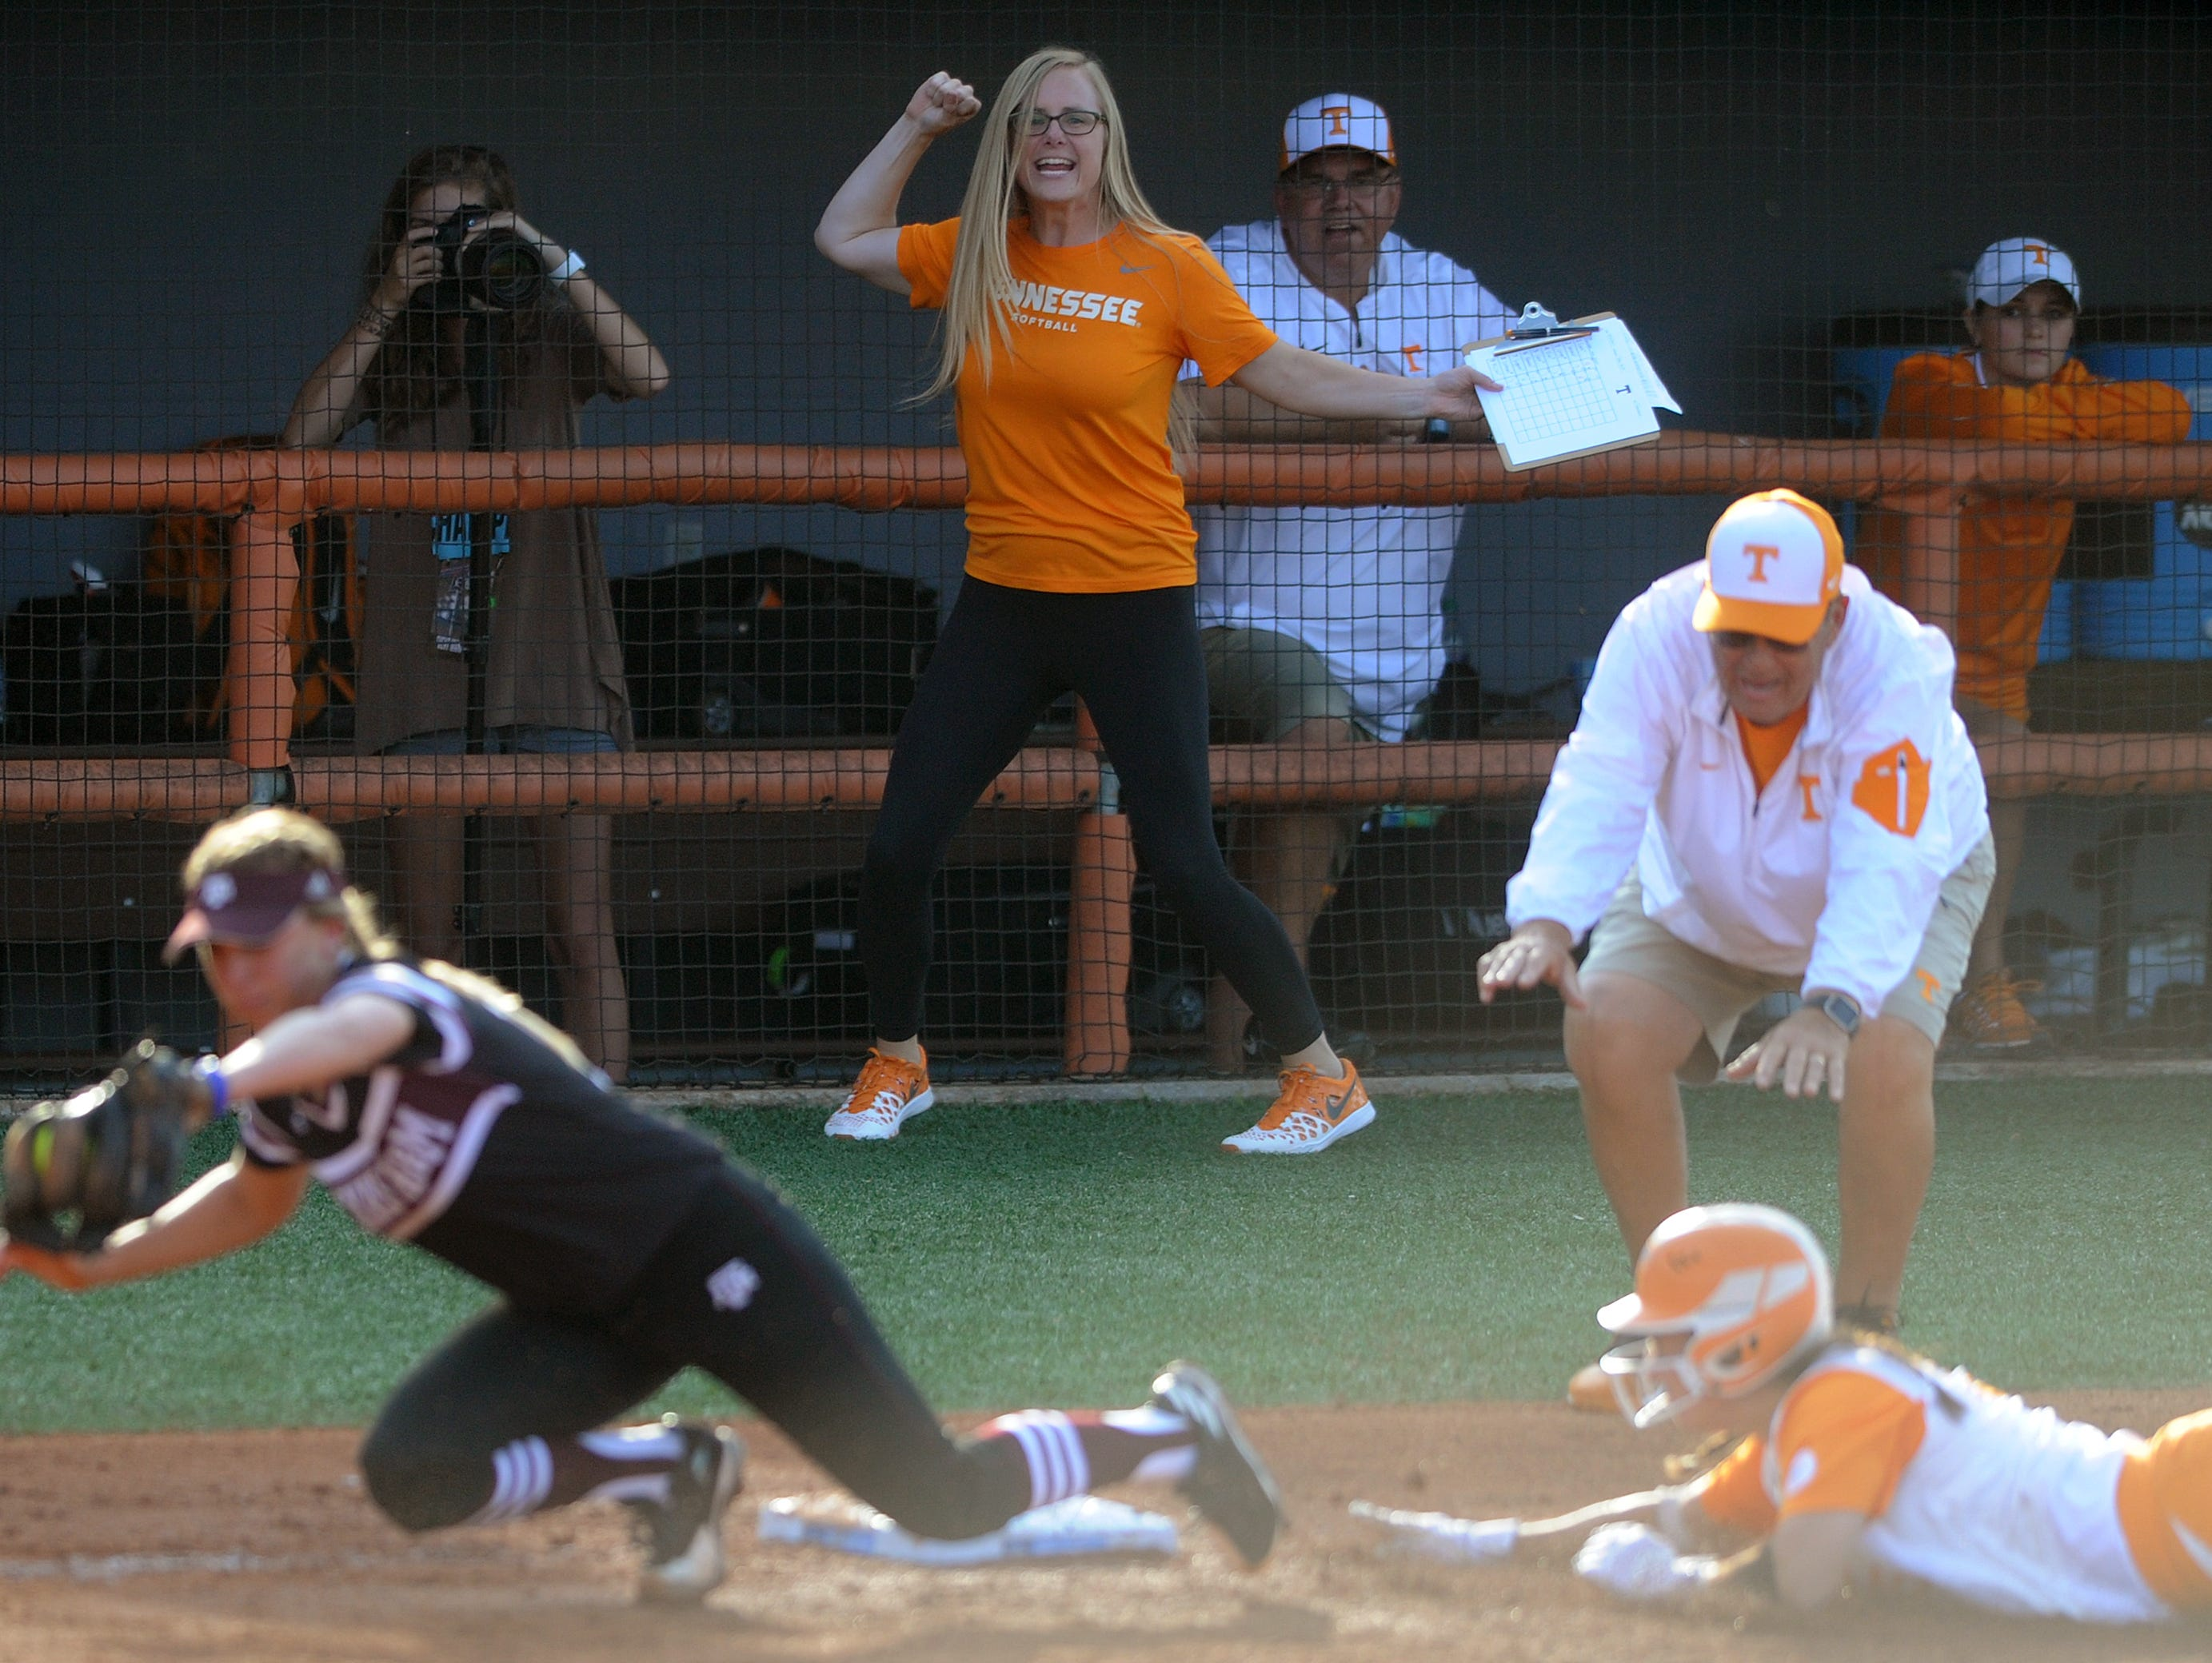 At center Director of Softball Operations Ashley Andrew celebrates as Tennessee's Meghan Gregg (55) slides safely into third base during an NCAA Super Regional game between Tennessee and Texas A&M at Sherri Parker Lee Stadium on Friday, May 26, 2017. Tennessee defeated Texas A&M 8-1.